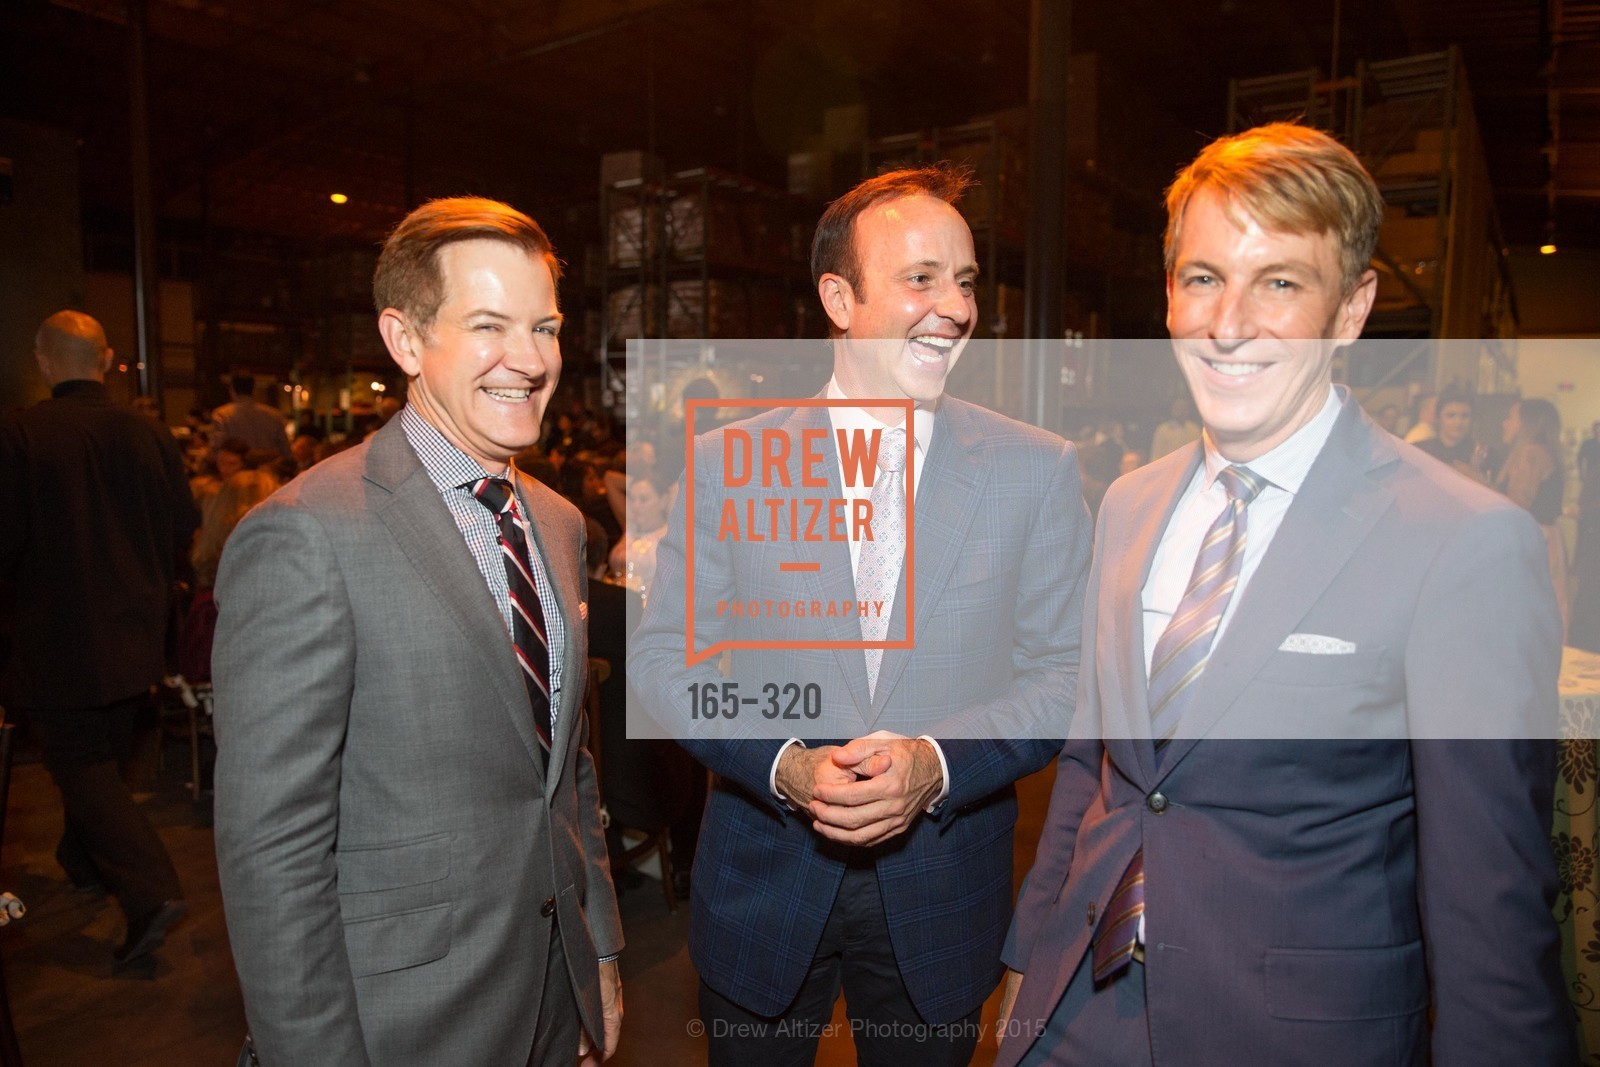 Trent Norris, Brian Boitano, Jack Calhoun, SF - Marin Food Bank Presents ONE BIG TABLE, SF- Marin Food Bank. 900 Pennsylvania Ave, September 26th, 2015,Drew Altizer, Drew Altizer Photography, full-service agency, private events, San Francisco photographer, photographer california